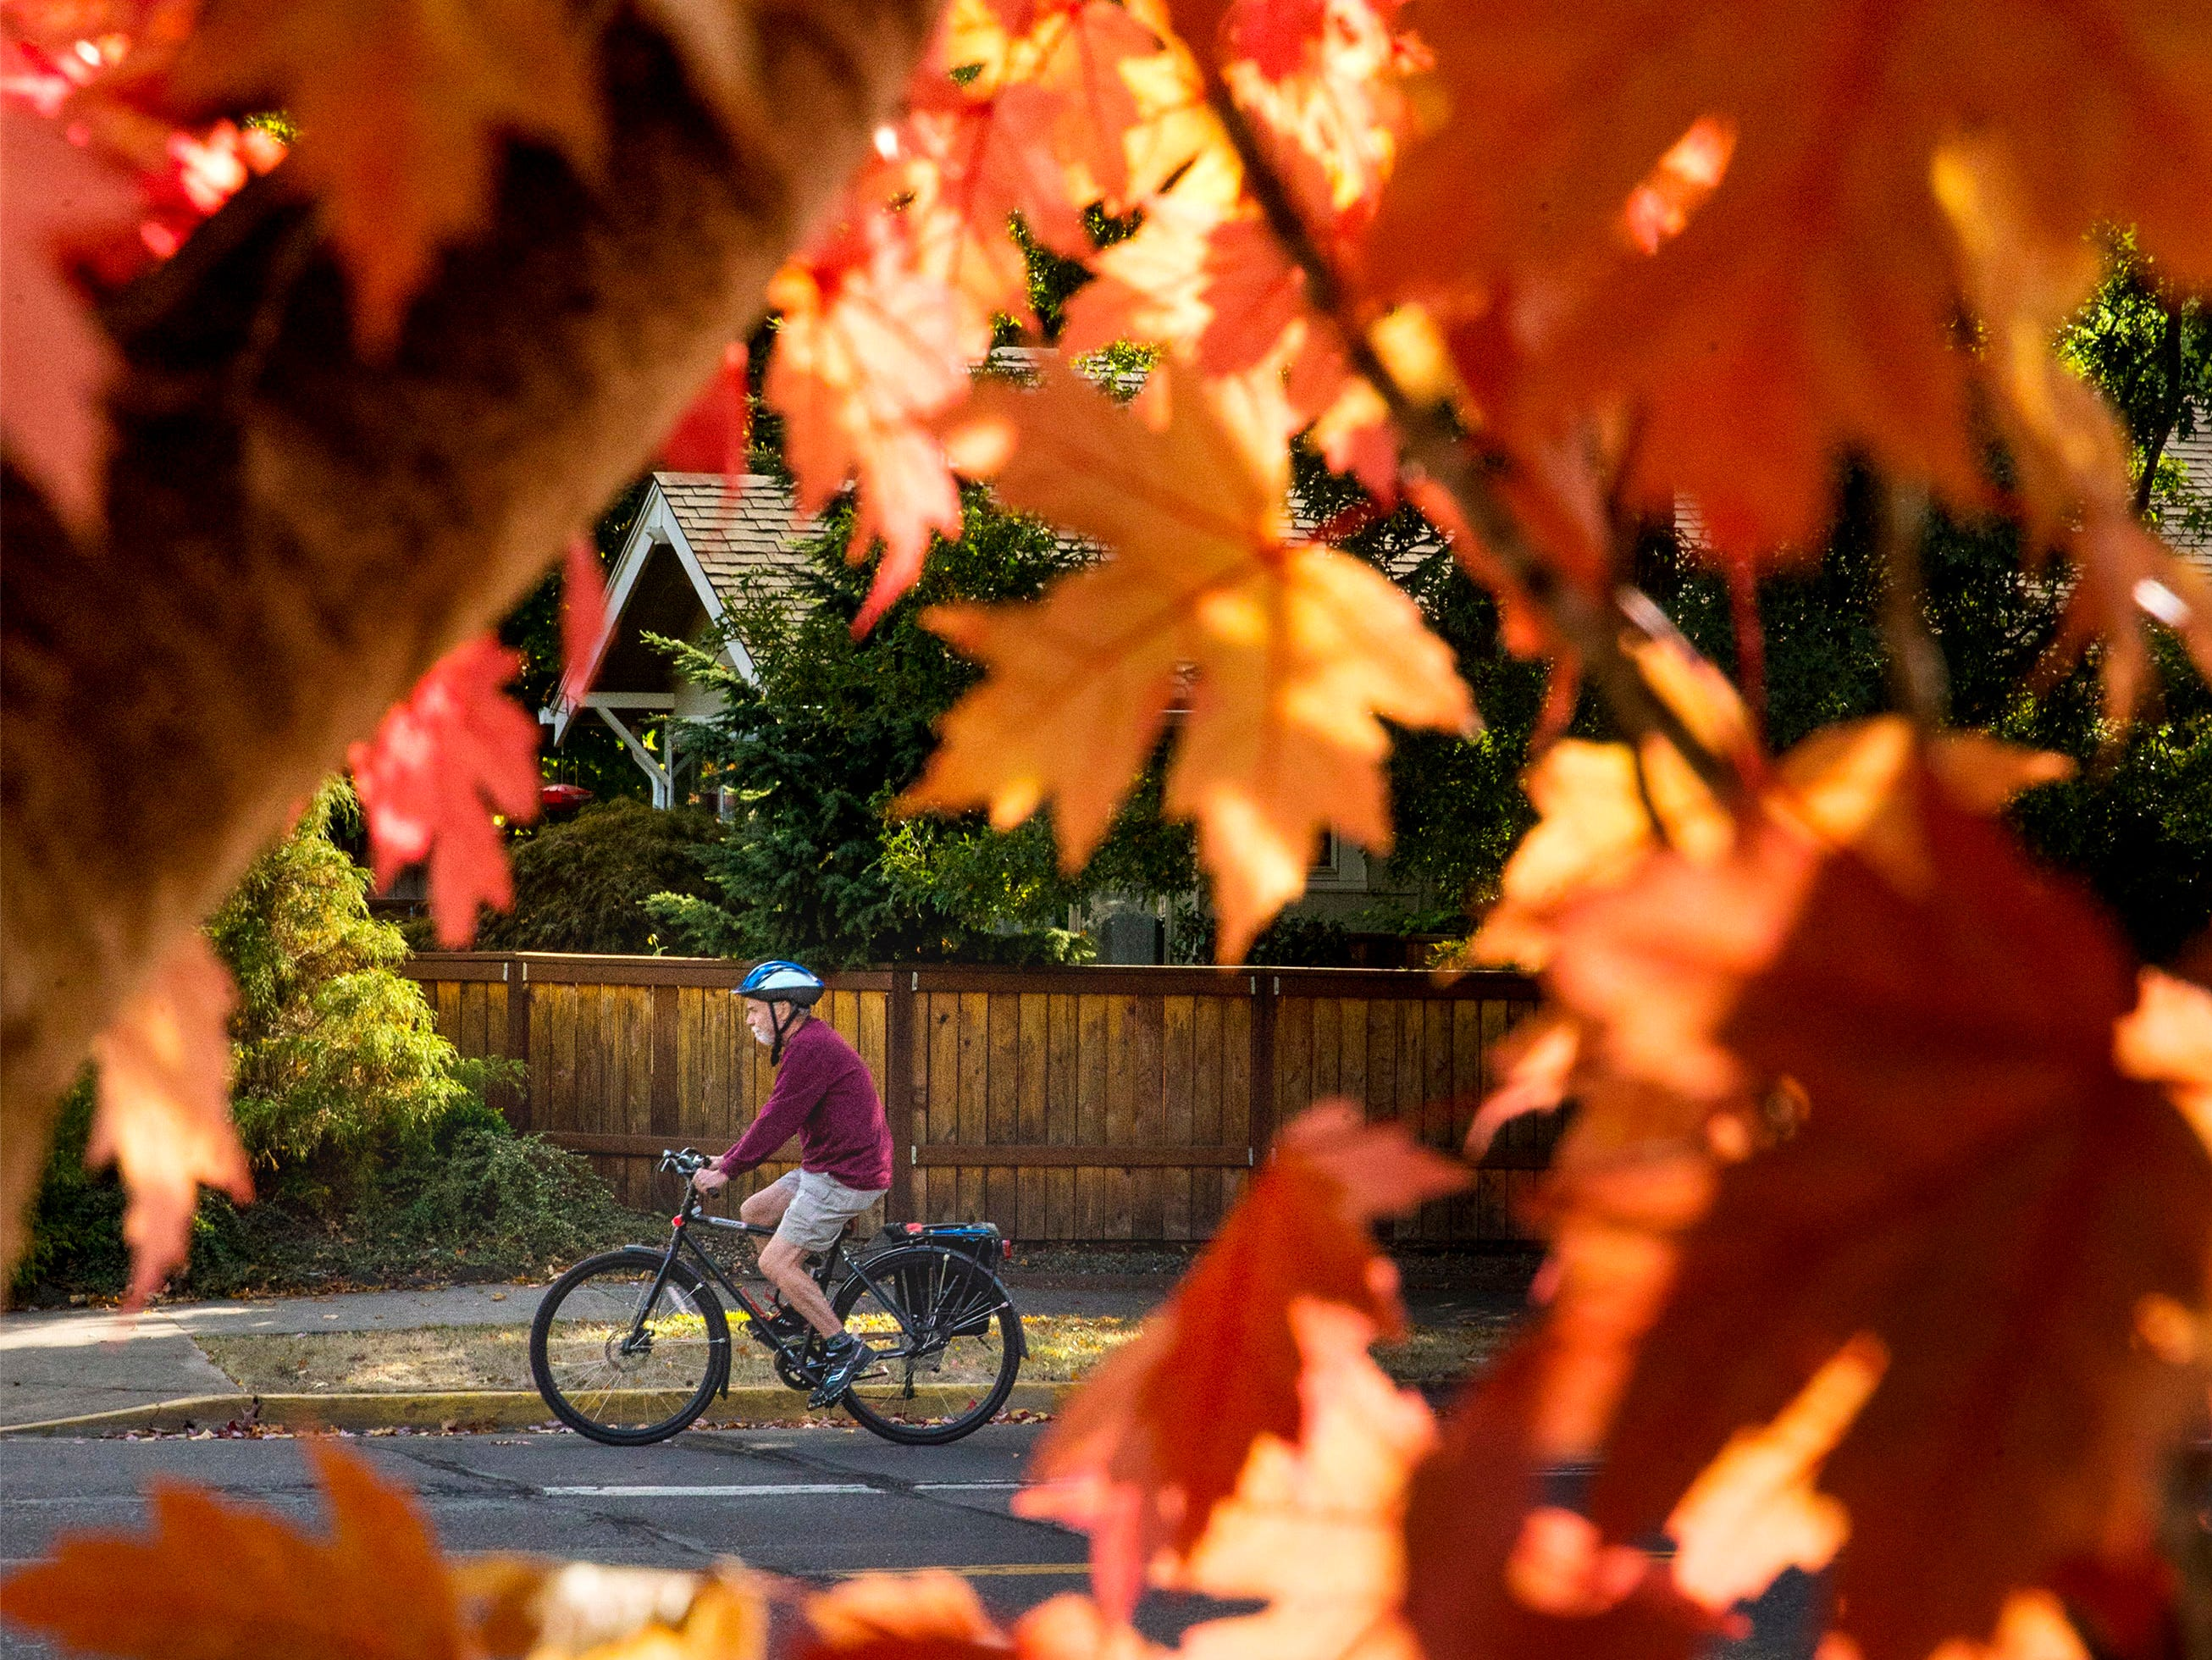 A cyclist is framed by fall foliage as he rides along 24th Avenue near Onyx Street in Wednesday, Oct. 3, 2018 in Eugene, Ore. Cool fall temperatures are creating the conditions for leaves on many trees to begin putting on a colorful display.